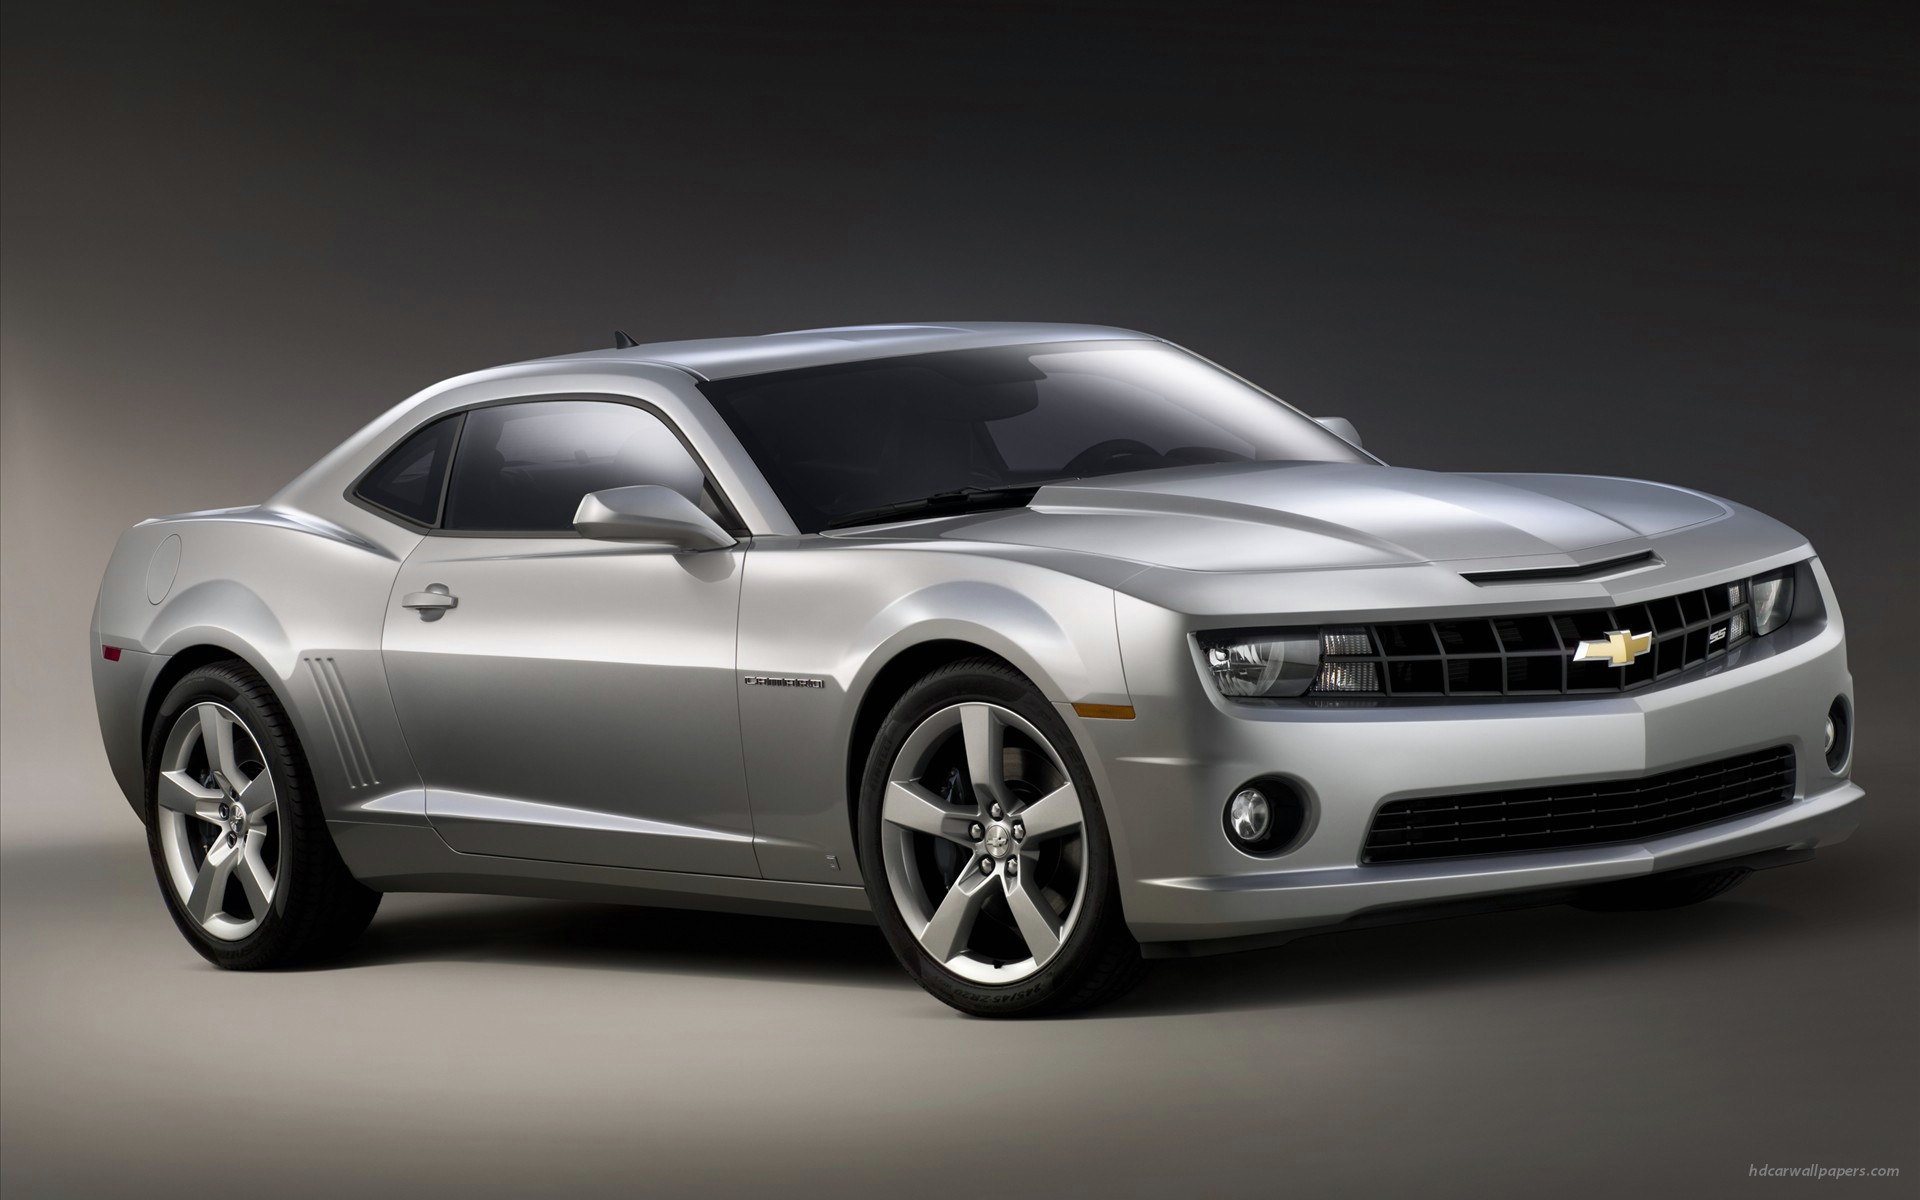 2010 Chevrolet Camaro SS 3 Wallpapers HD Wallpapers 1920x1200